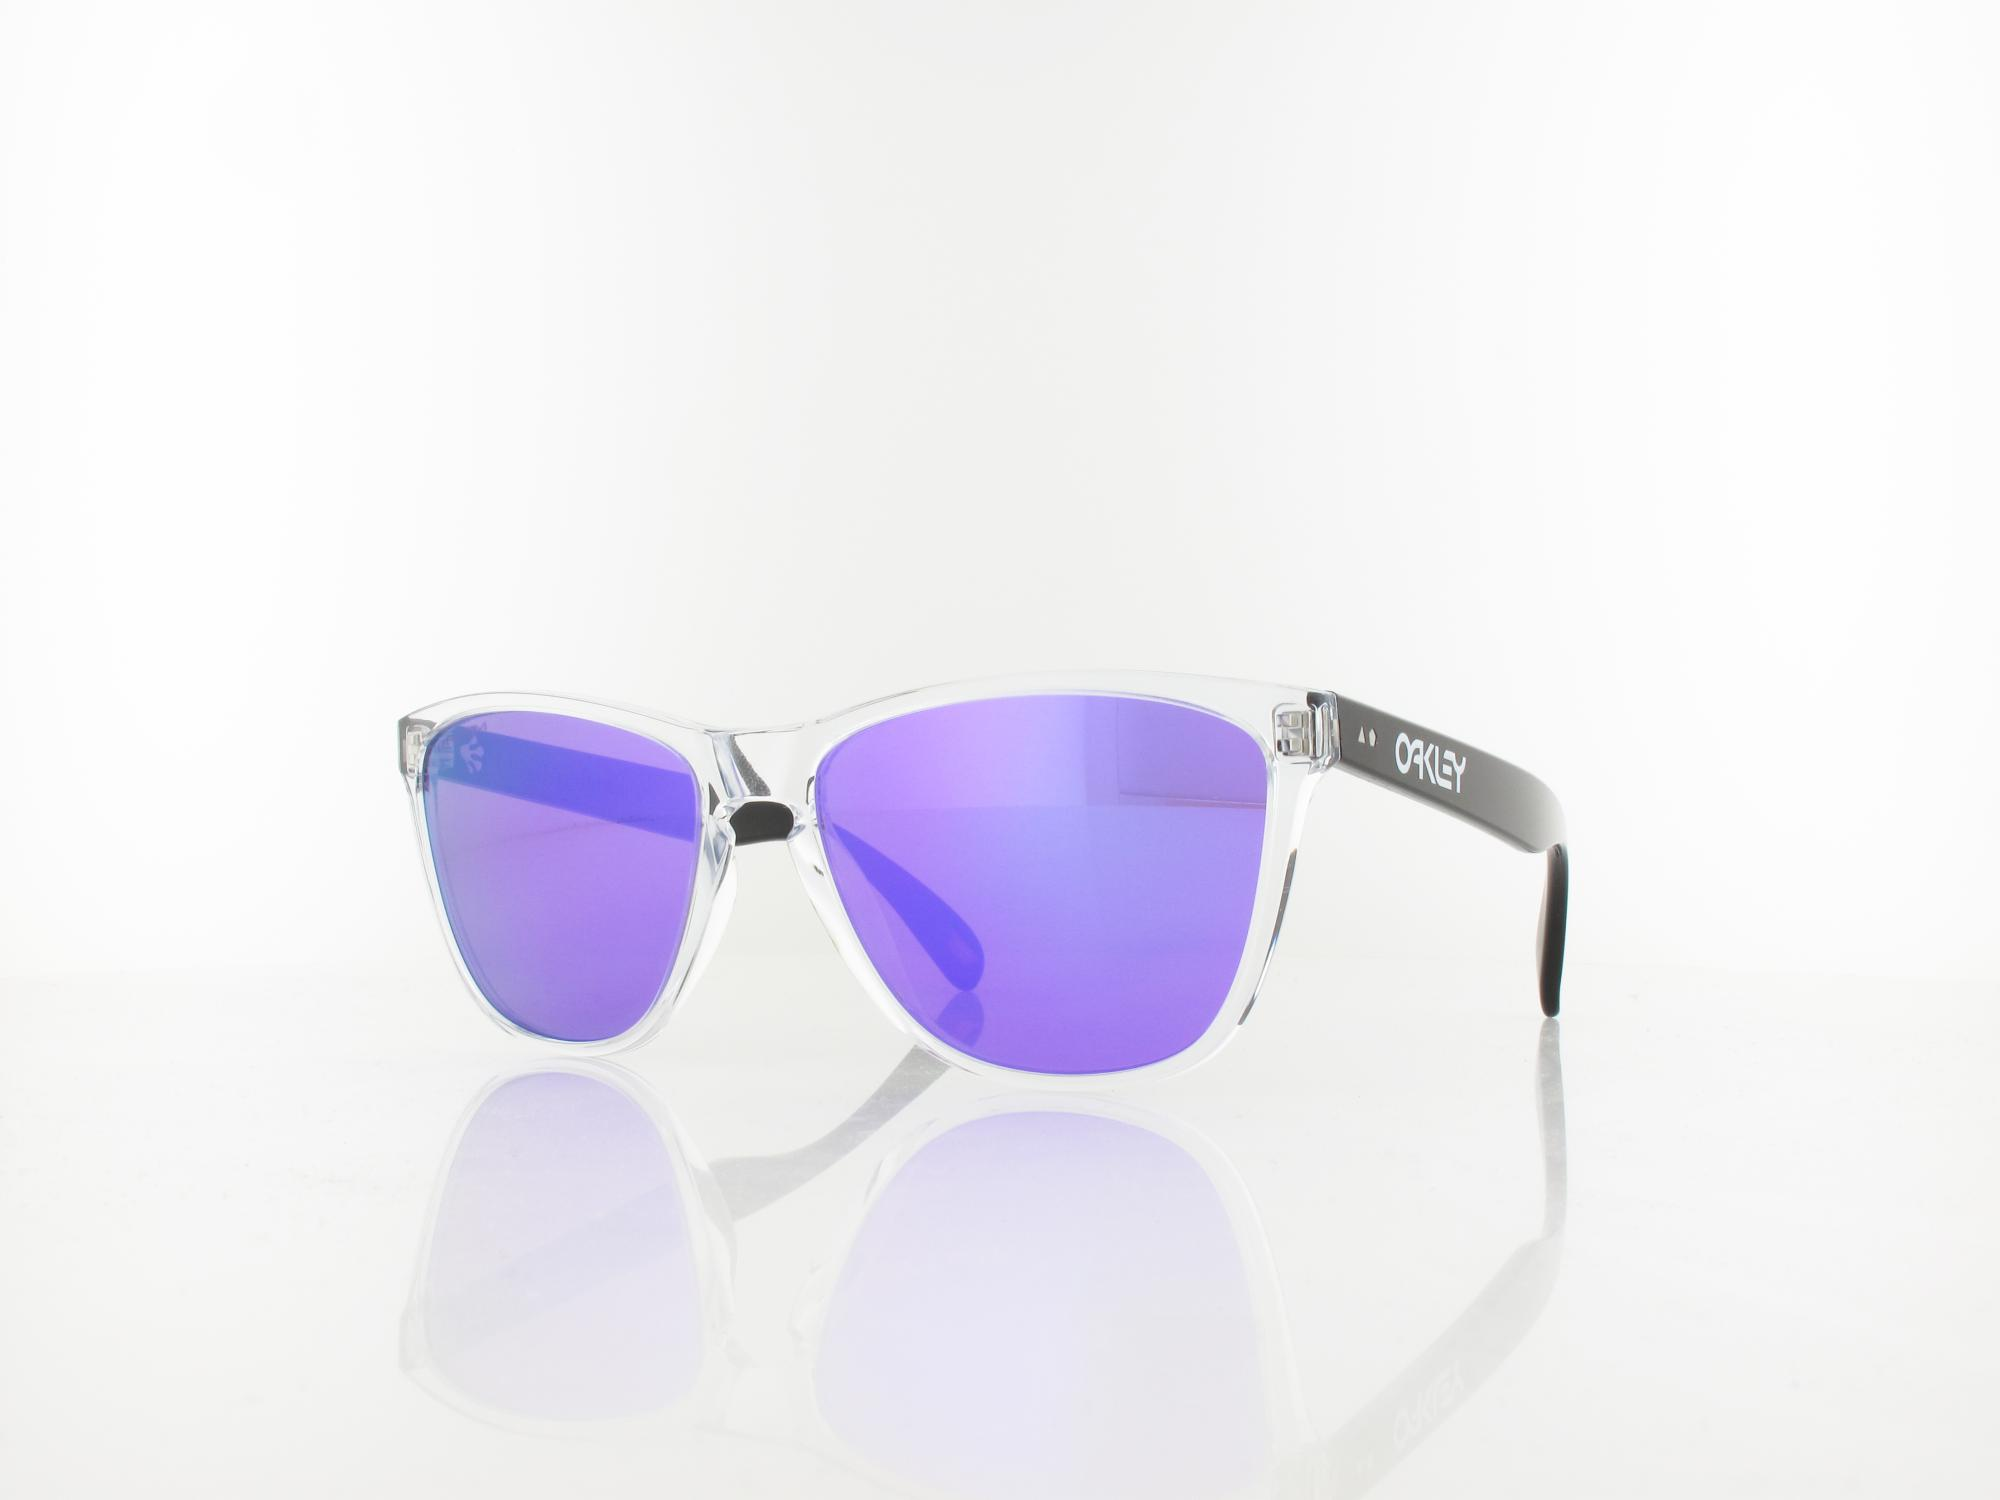 Oakley | Frogskins OO9444 05 57 | polished clear black / prizm violet